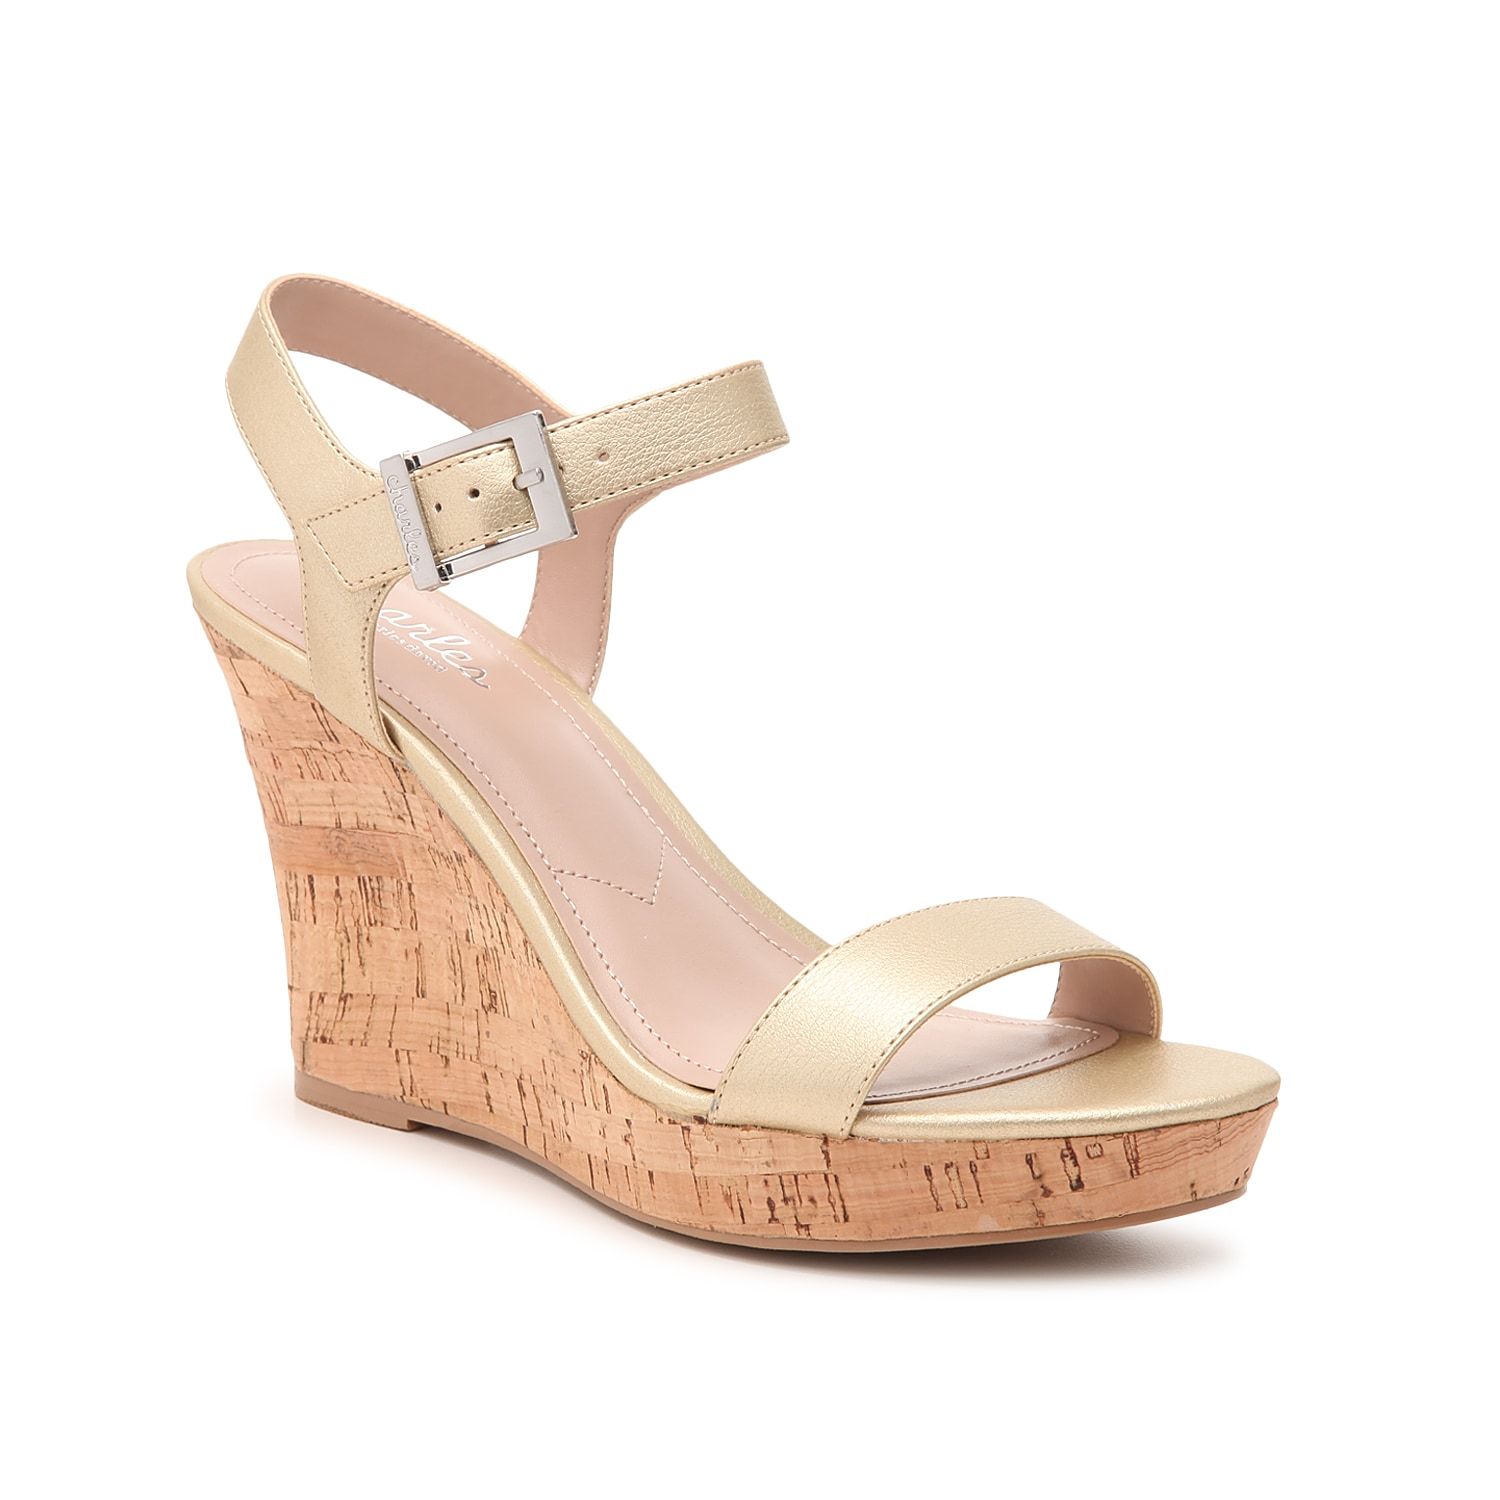 Change up your style with the Lindy wedge sandal from Charles by Charles David. This two-piece pair is fashioned with a gold metallic hue and a cork heel that will complete your entire look!